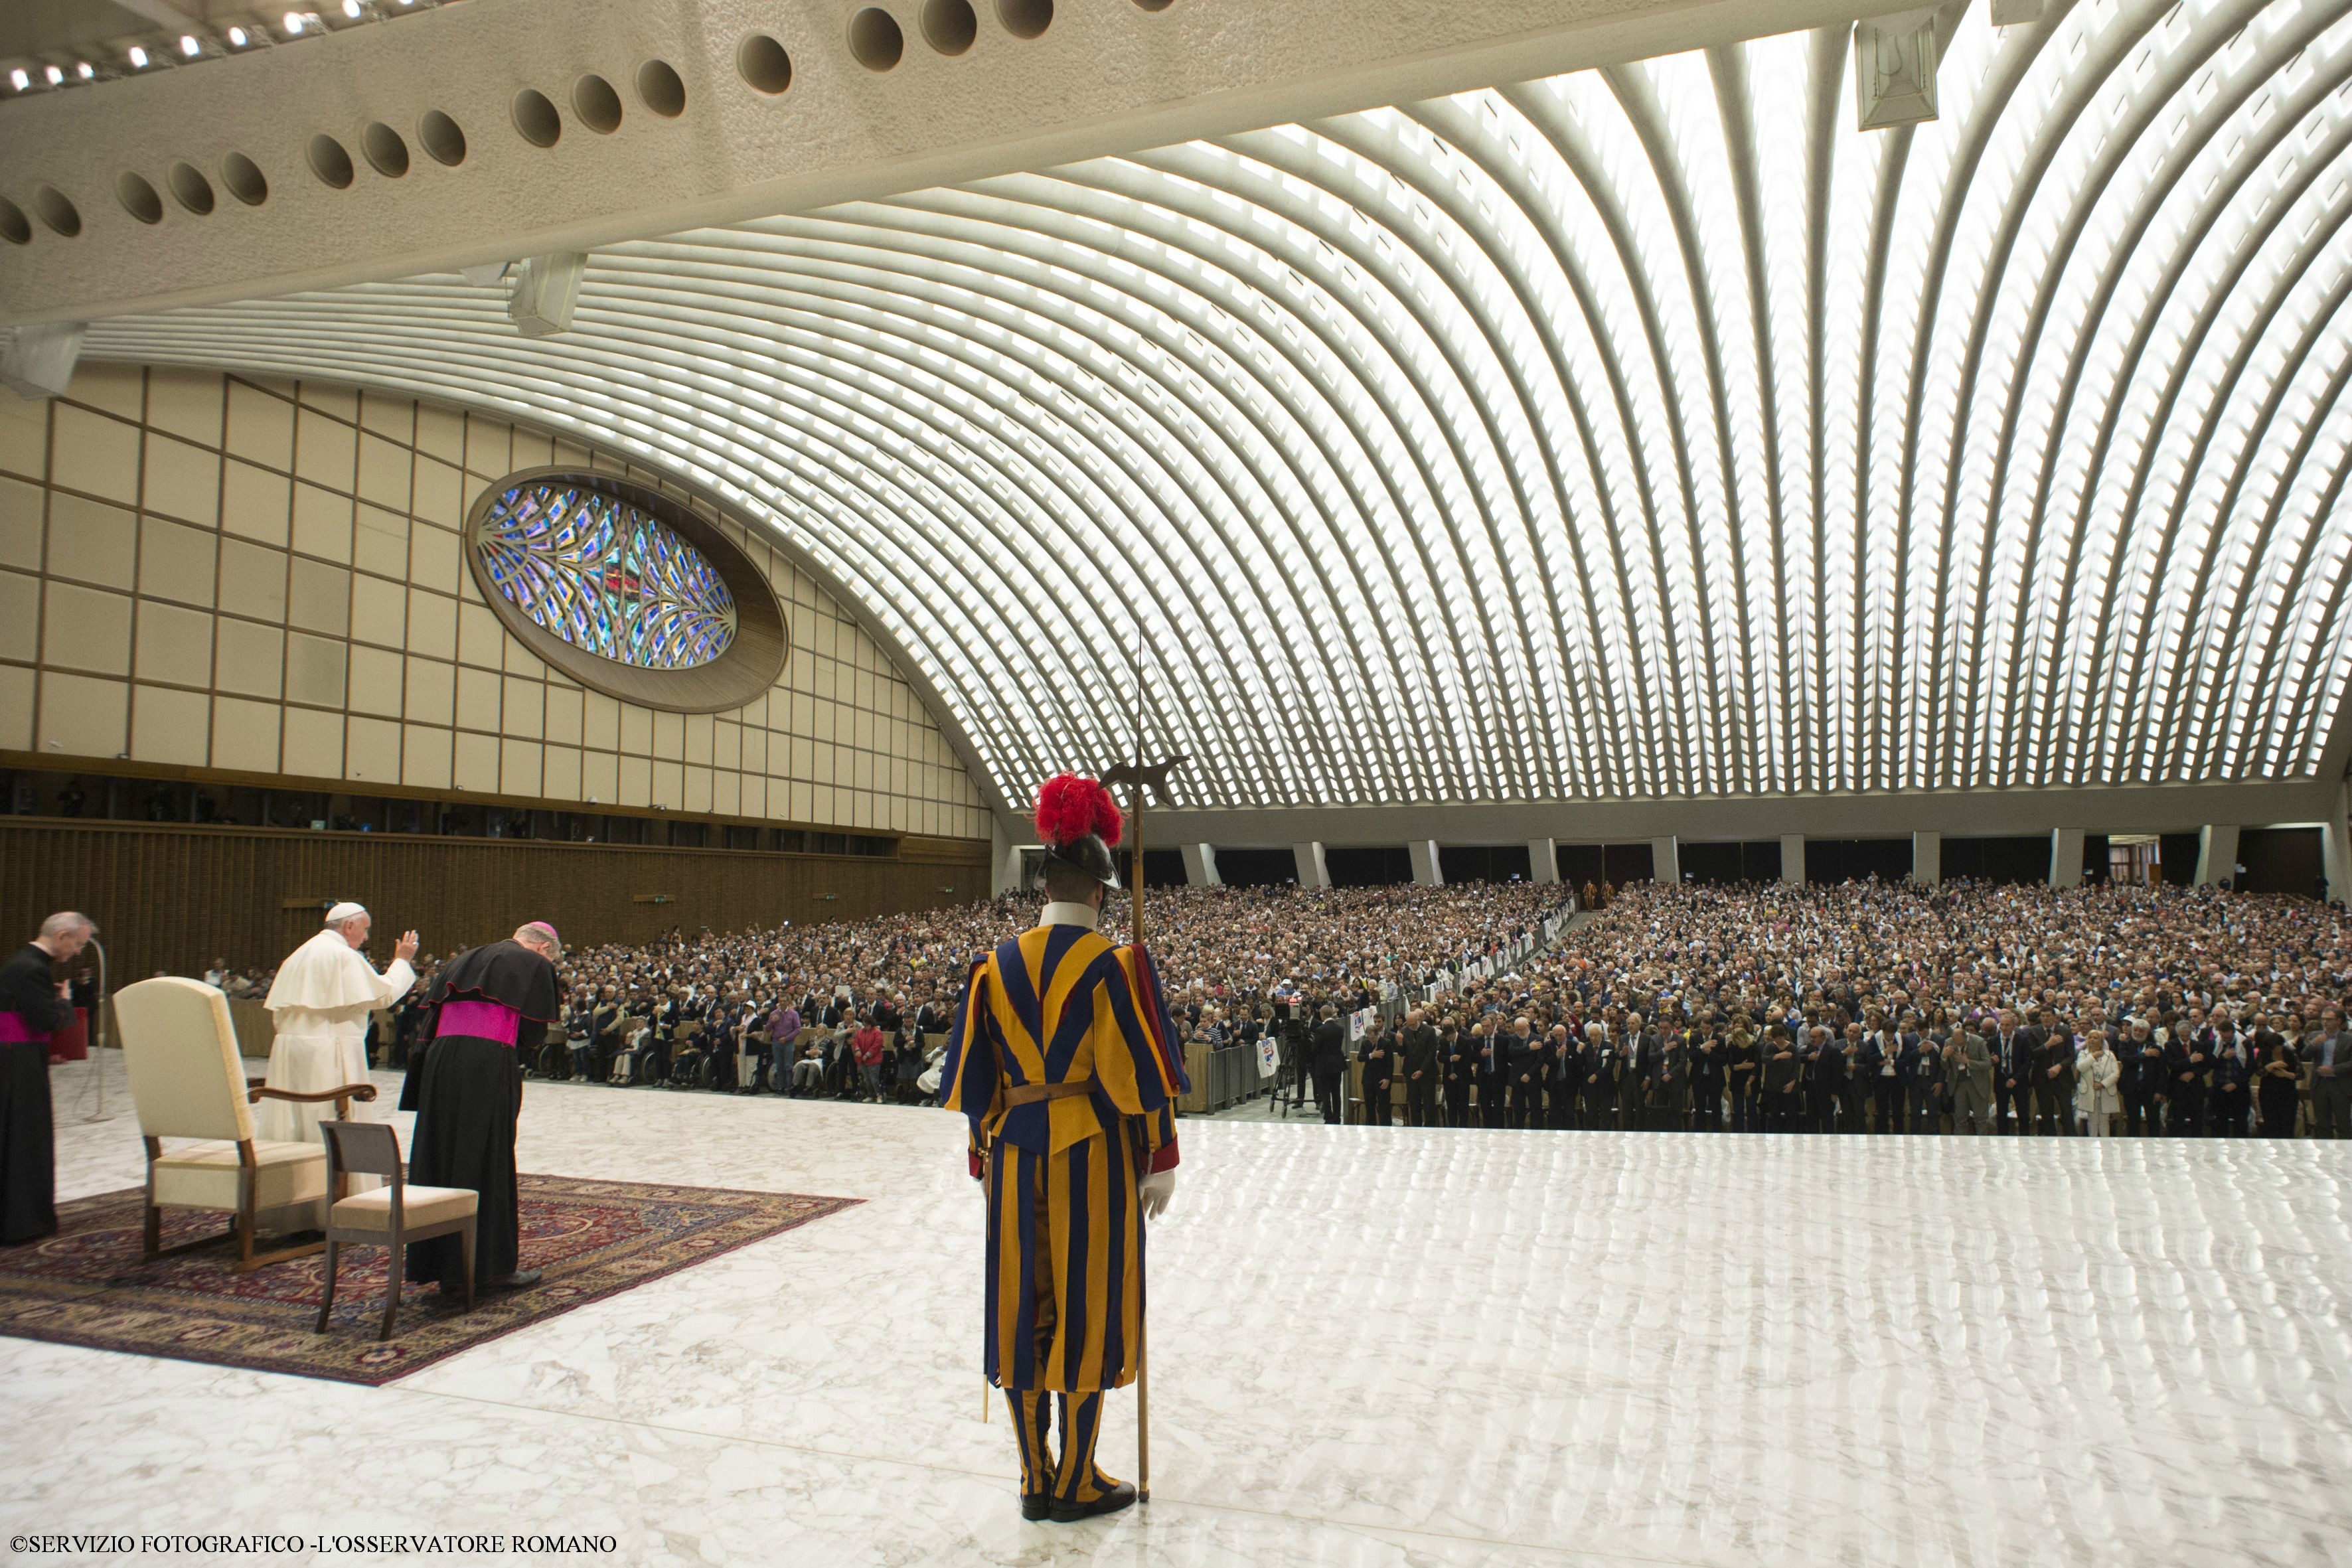 Pope Francis speaks during an audience to Italian Christian Workers Associations (ACLI) in the Paul VI Audience Hall